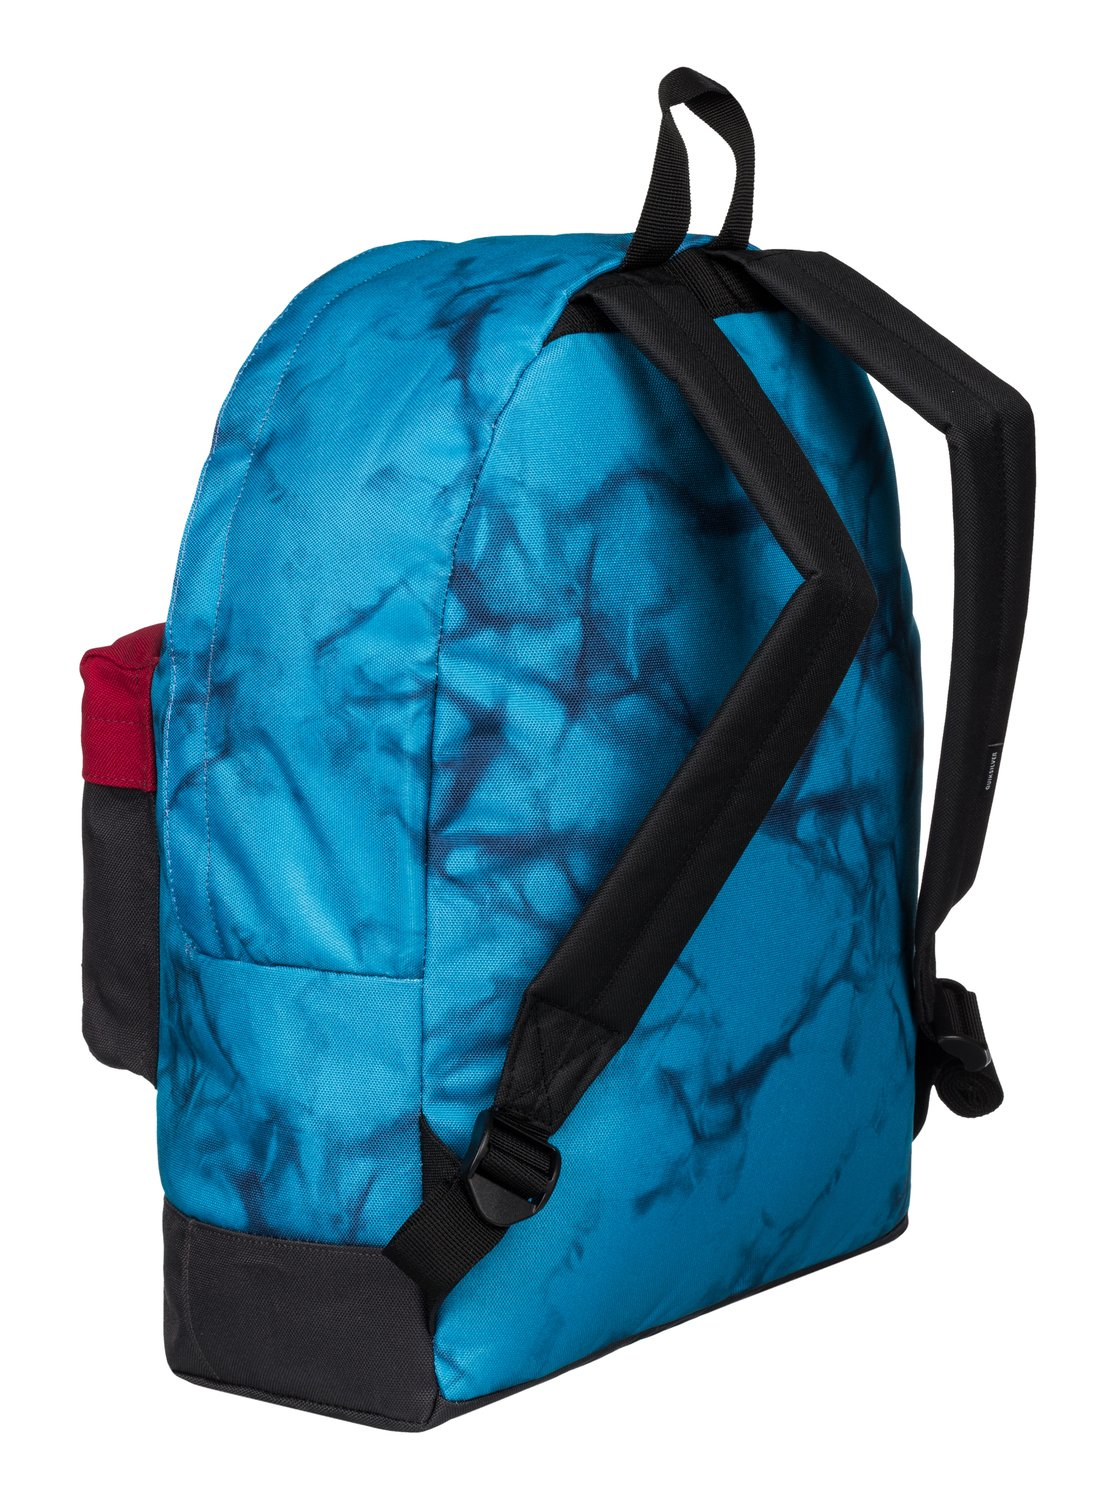 Quiksilver-Everyday-Poster-Medium-Backpack-Sac-a-dos-Homme